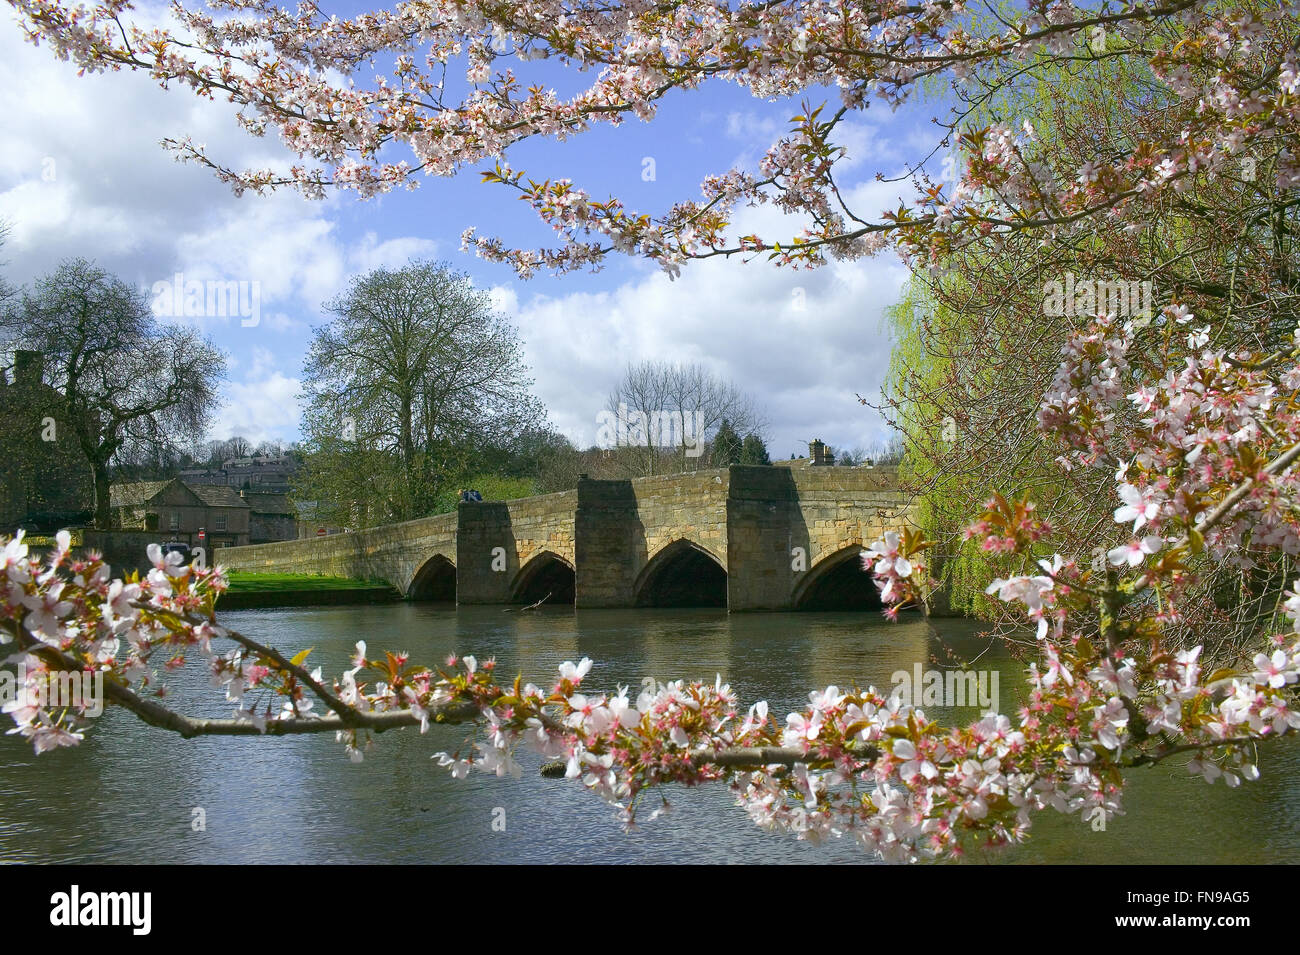 Bakewell bridge Derbyshire Peak District - Stock Image